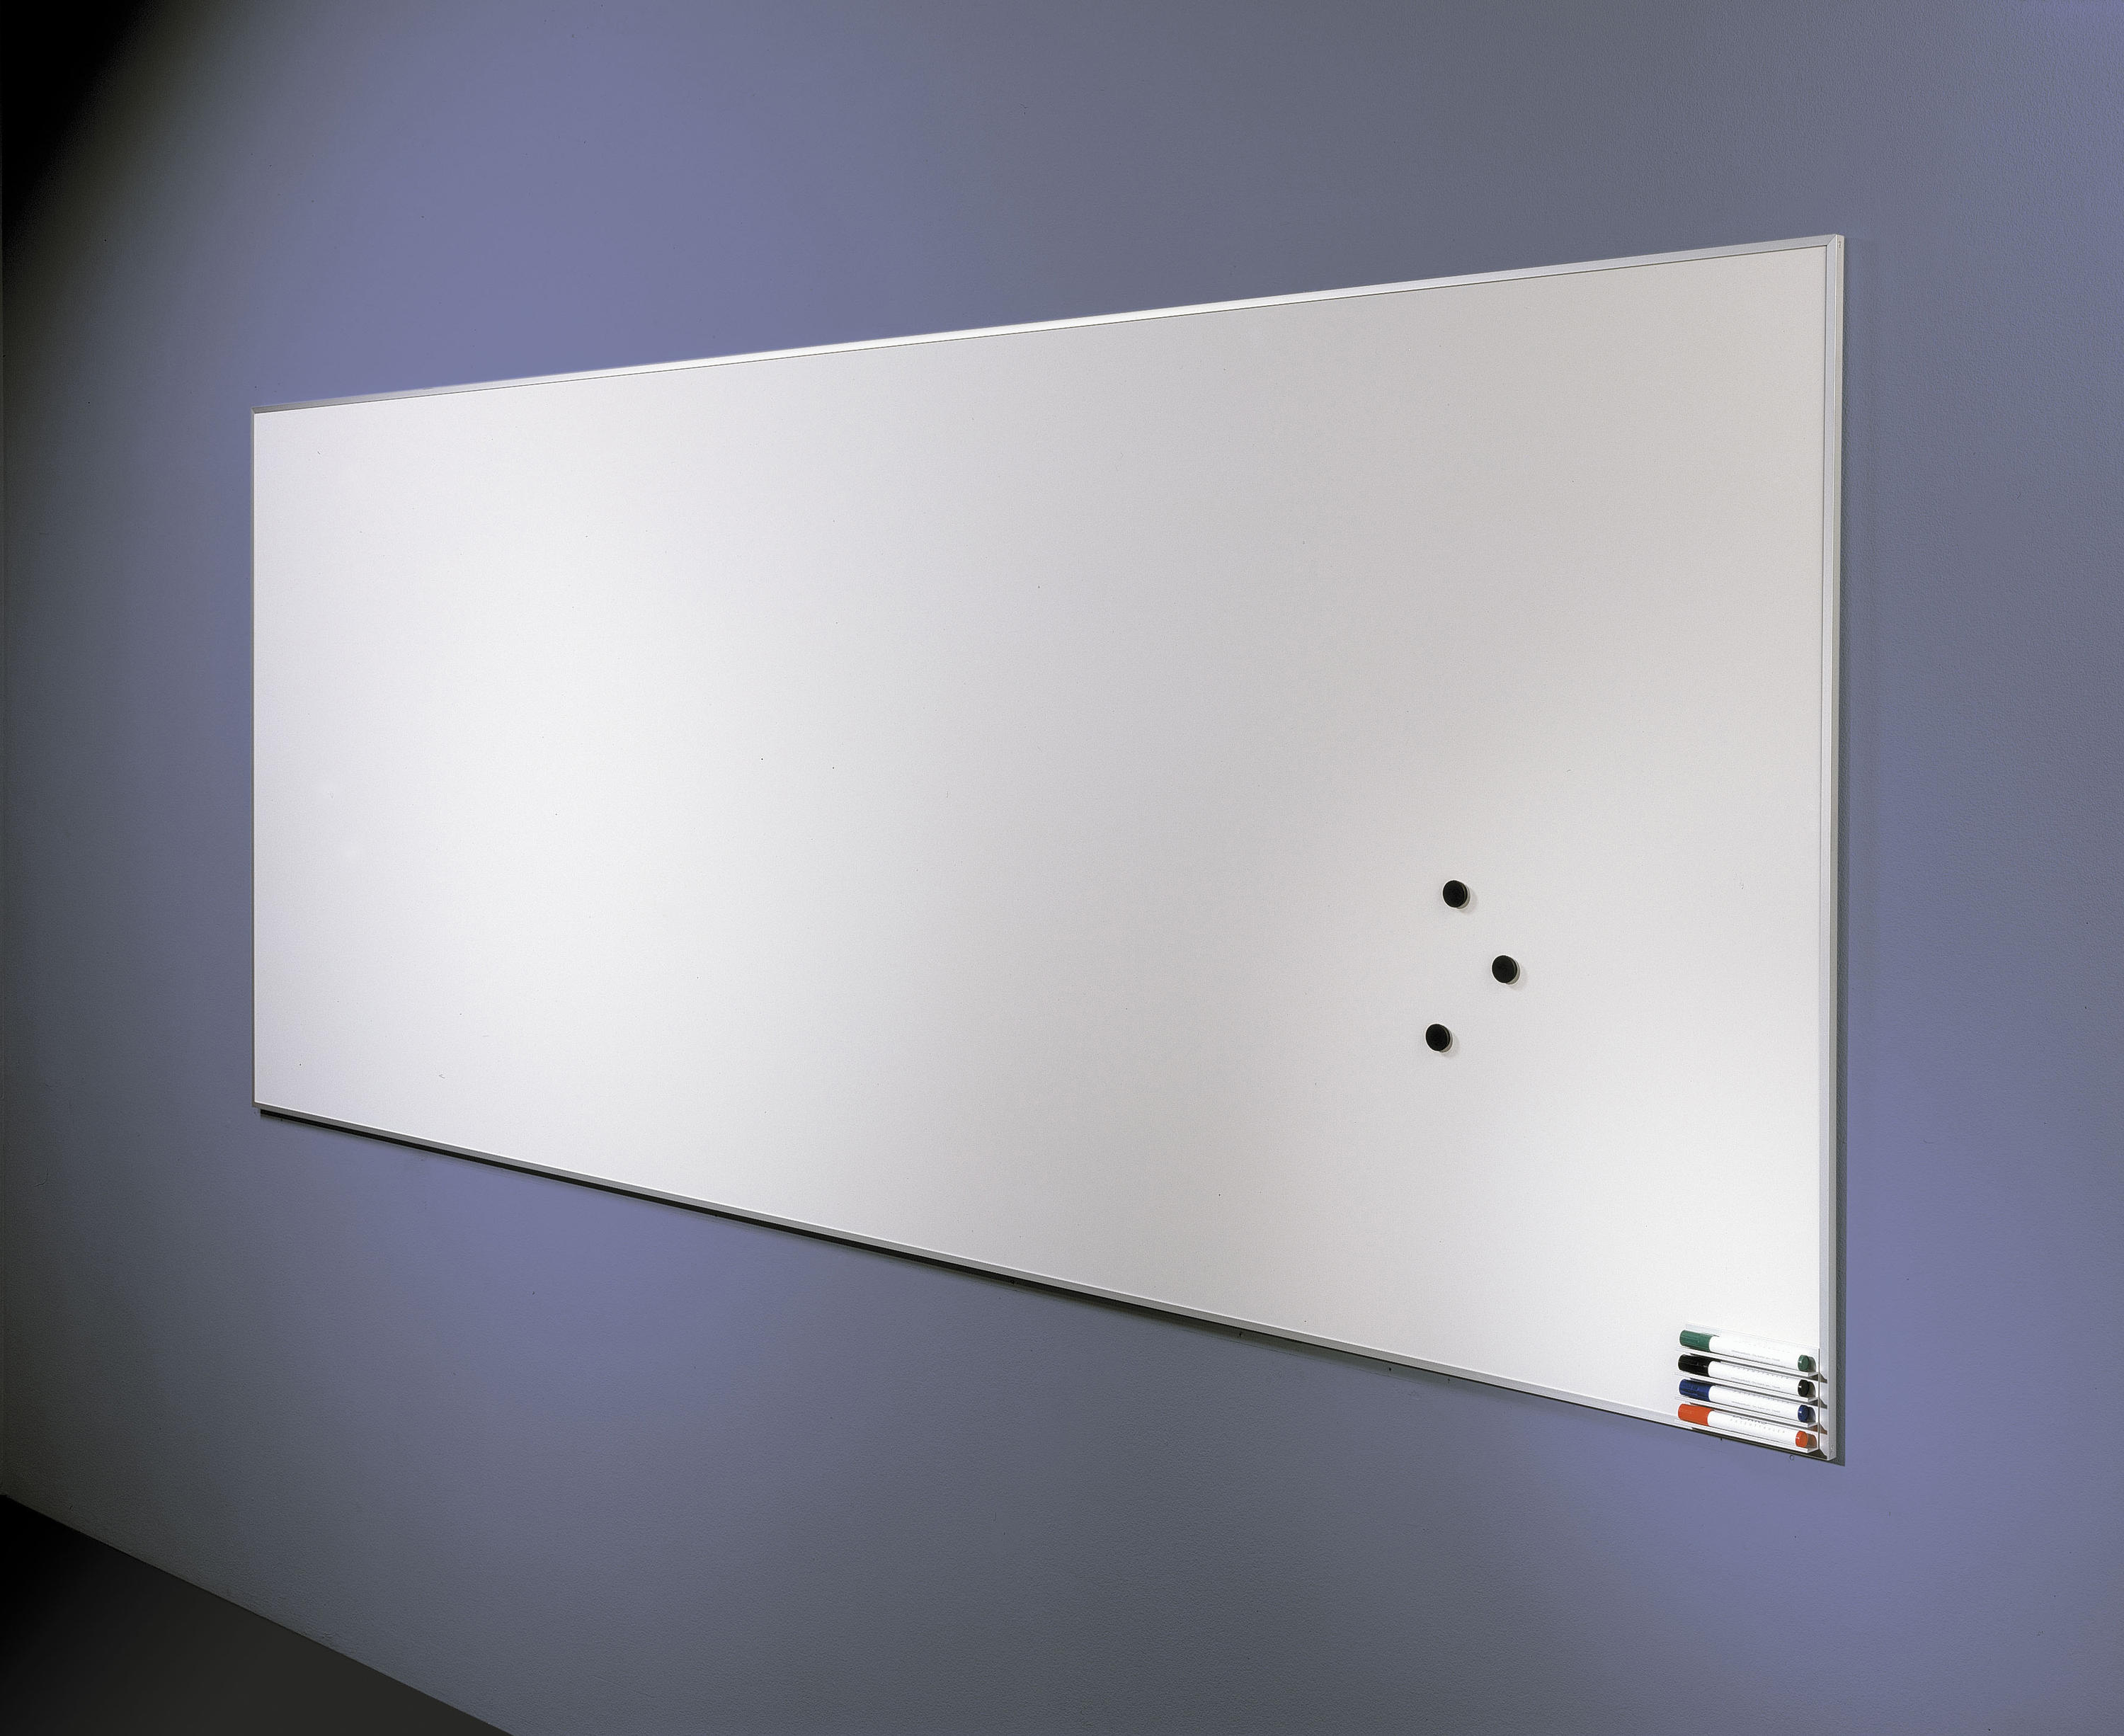 Whiteboard By Borks Architonic